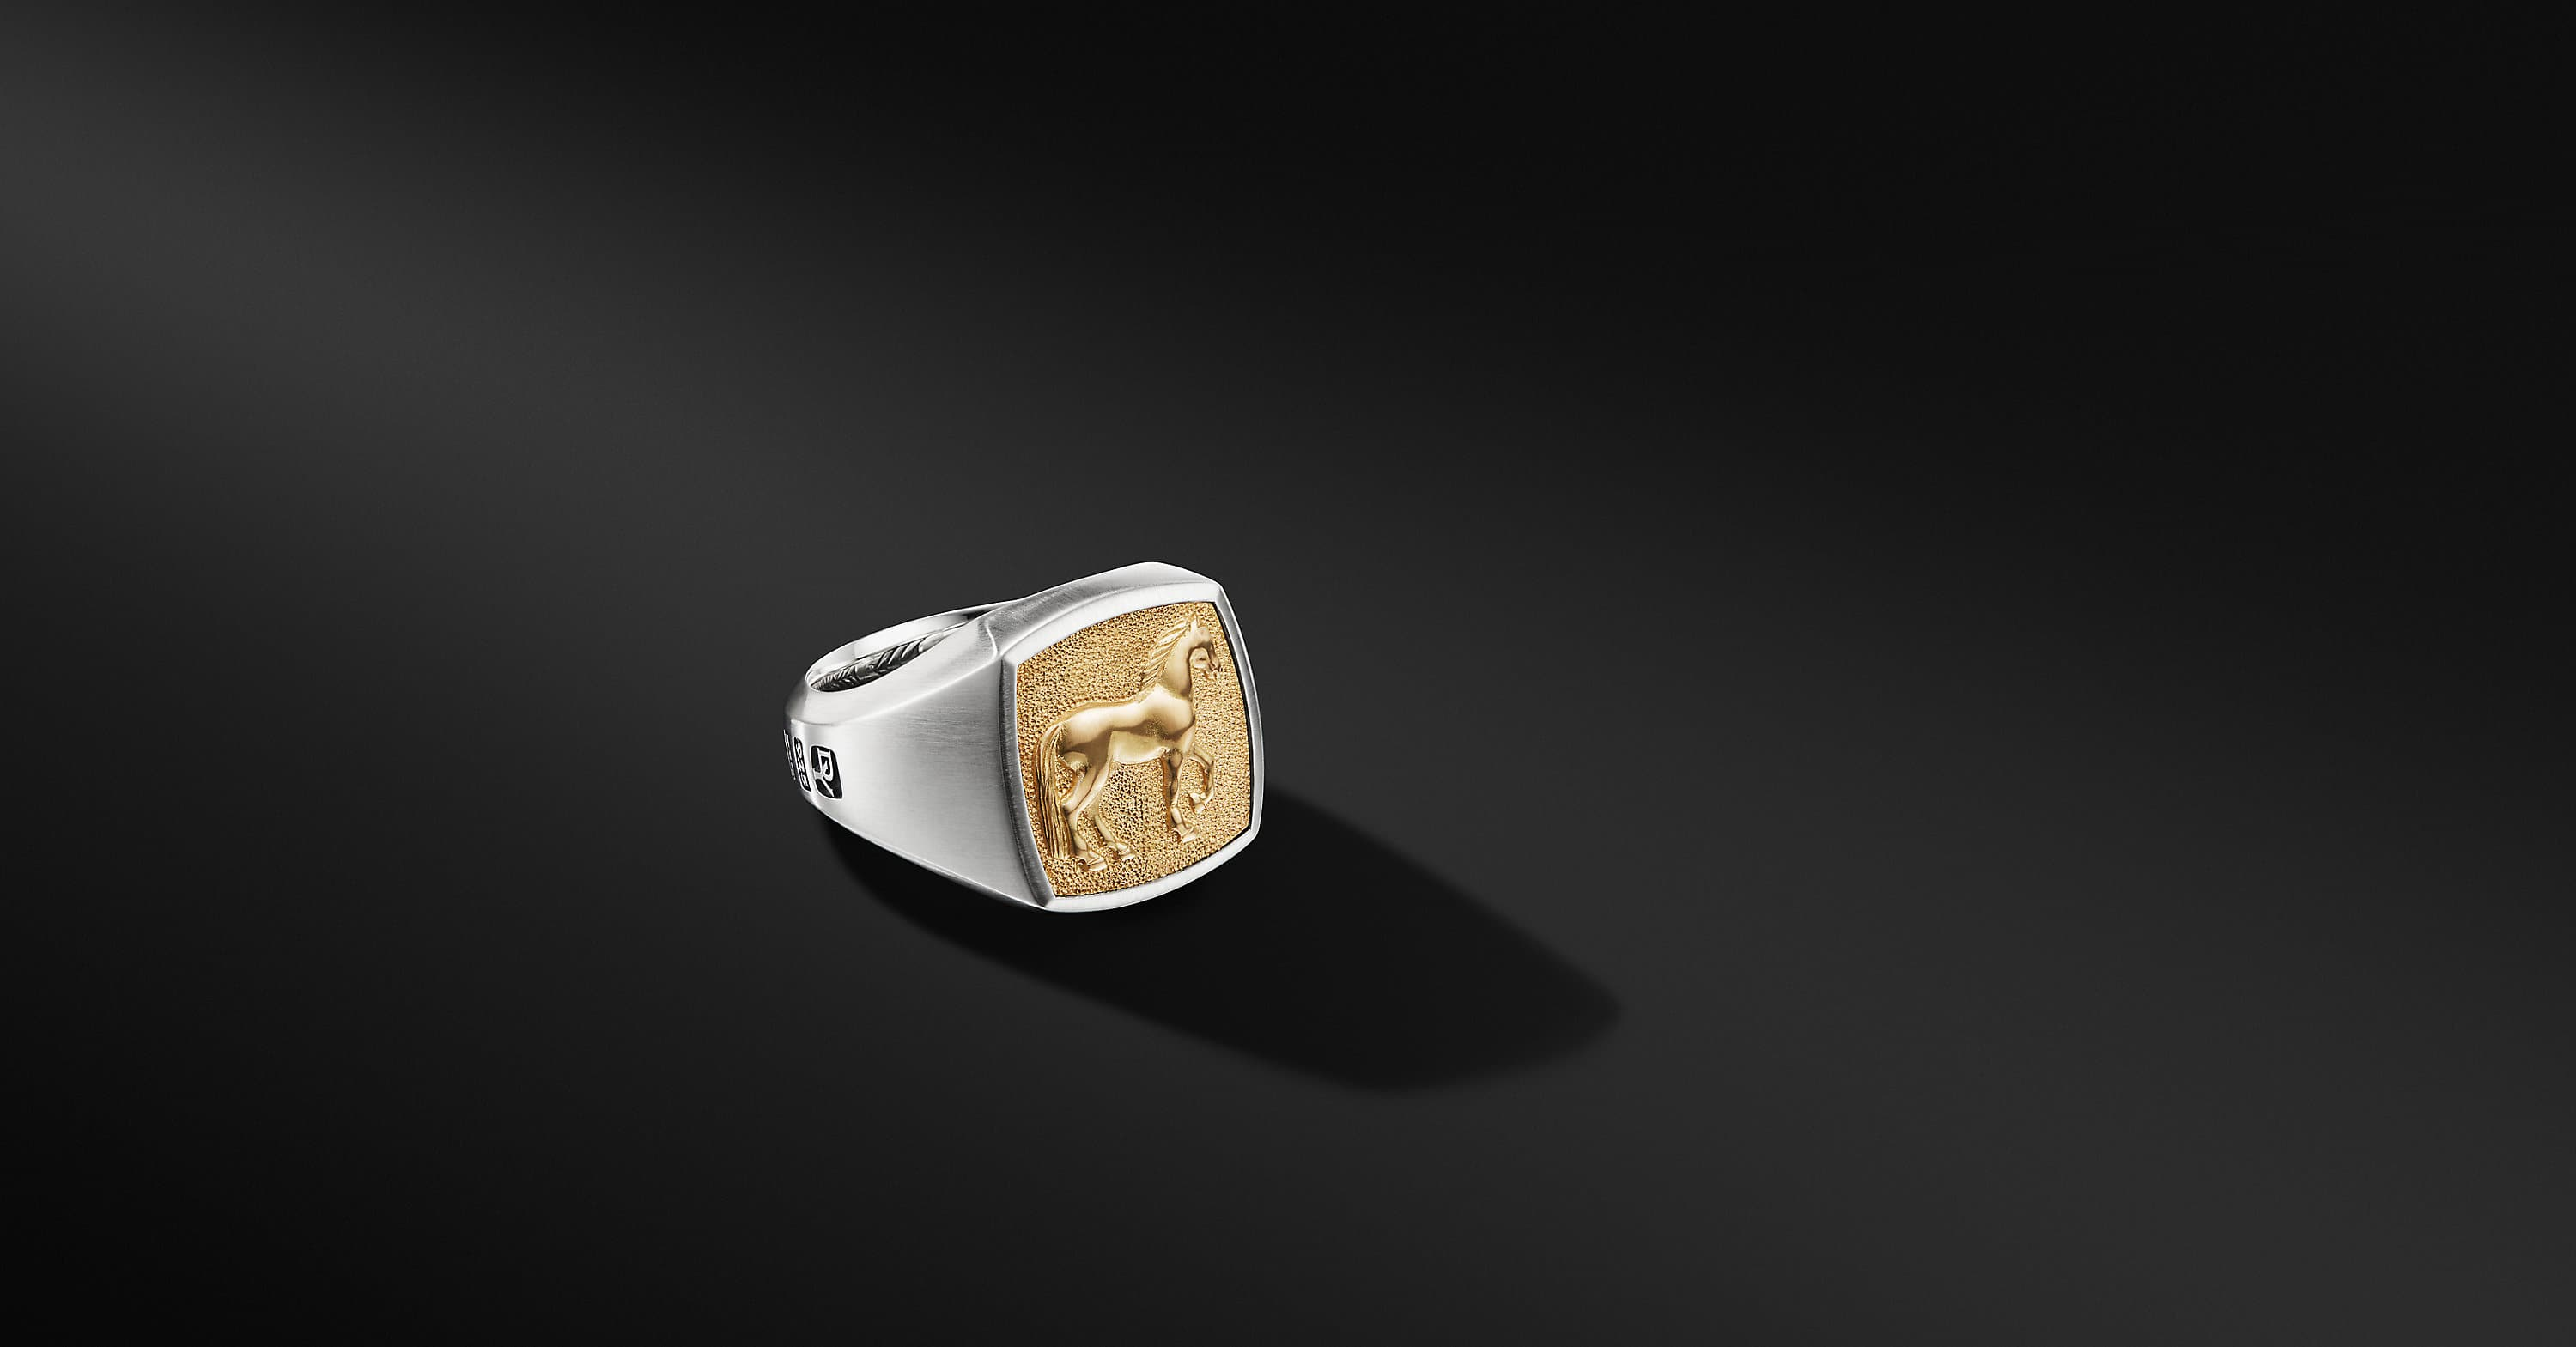 Petrvs Horse Signet Ring with 18K Yellow Gold